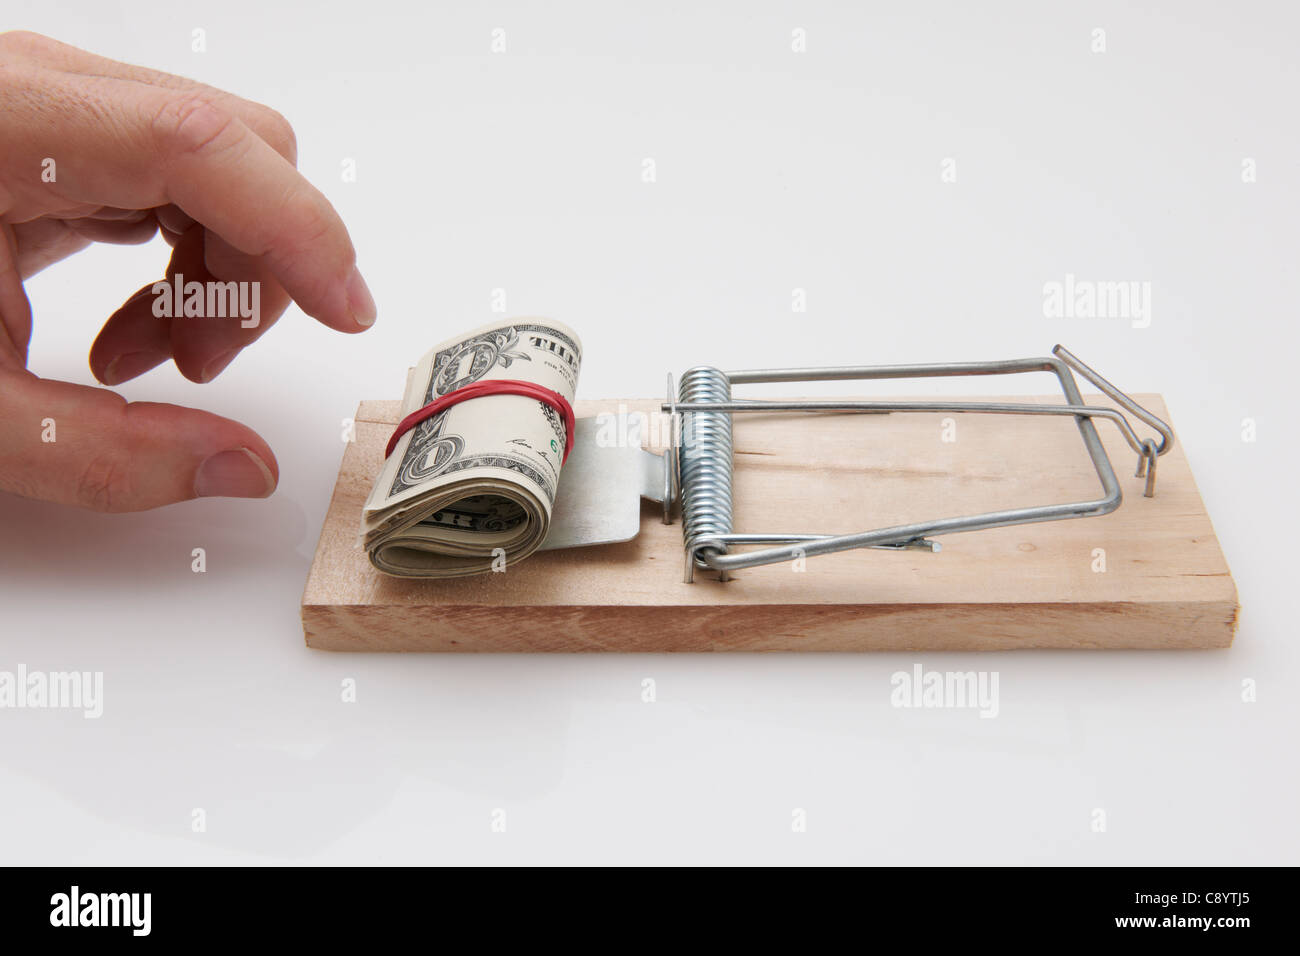 Male hand taking rolled up dollar bills from mousetrap Stock Photo